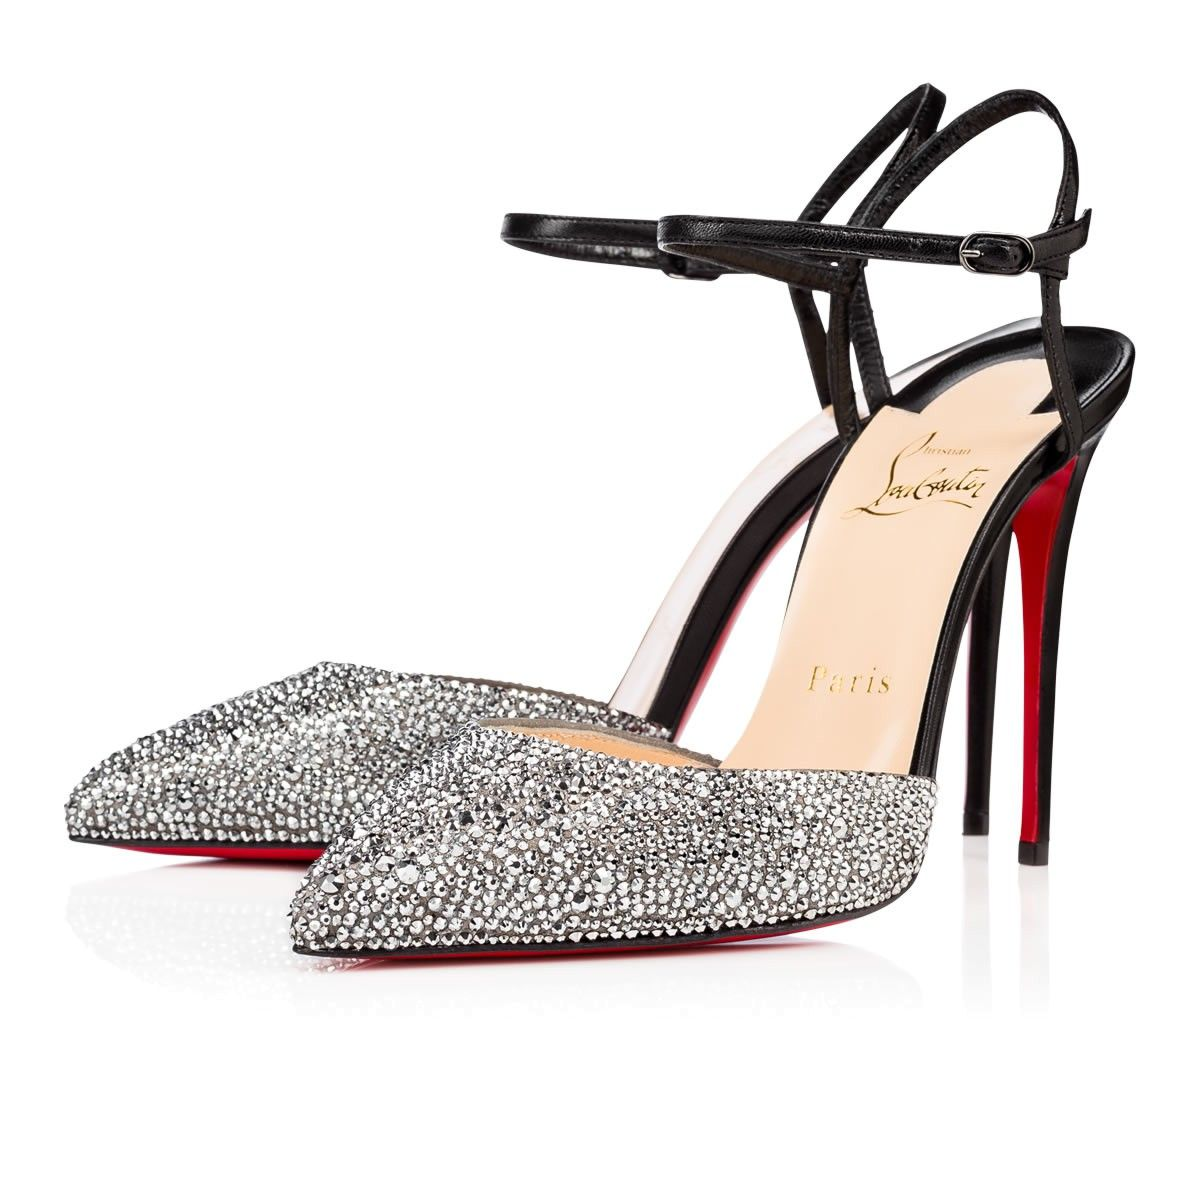 Rivierina strass 100 BLACK/METAL CHROME Strass - Women Shoes - Christian  Louboutin